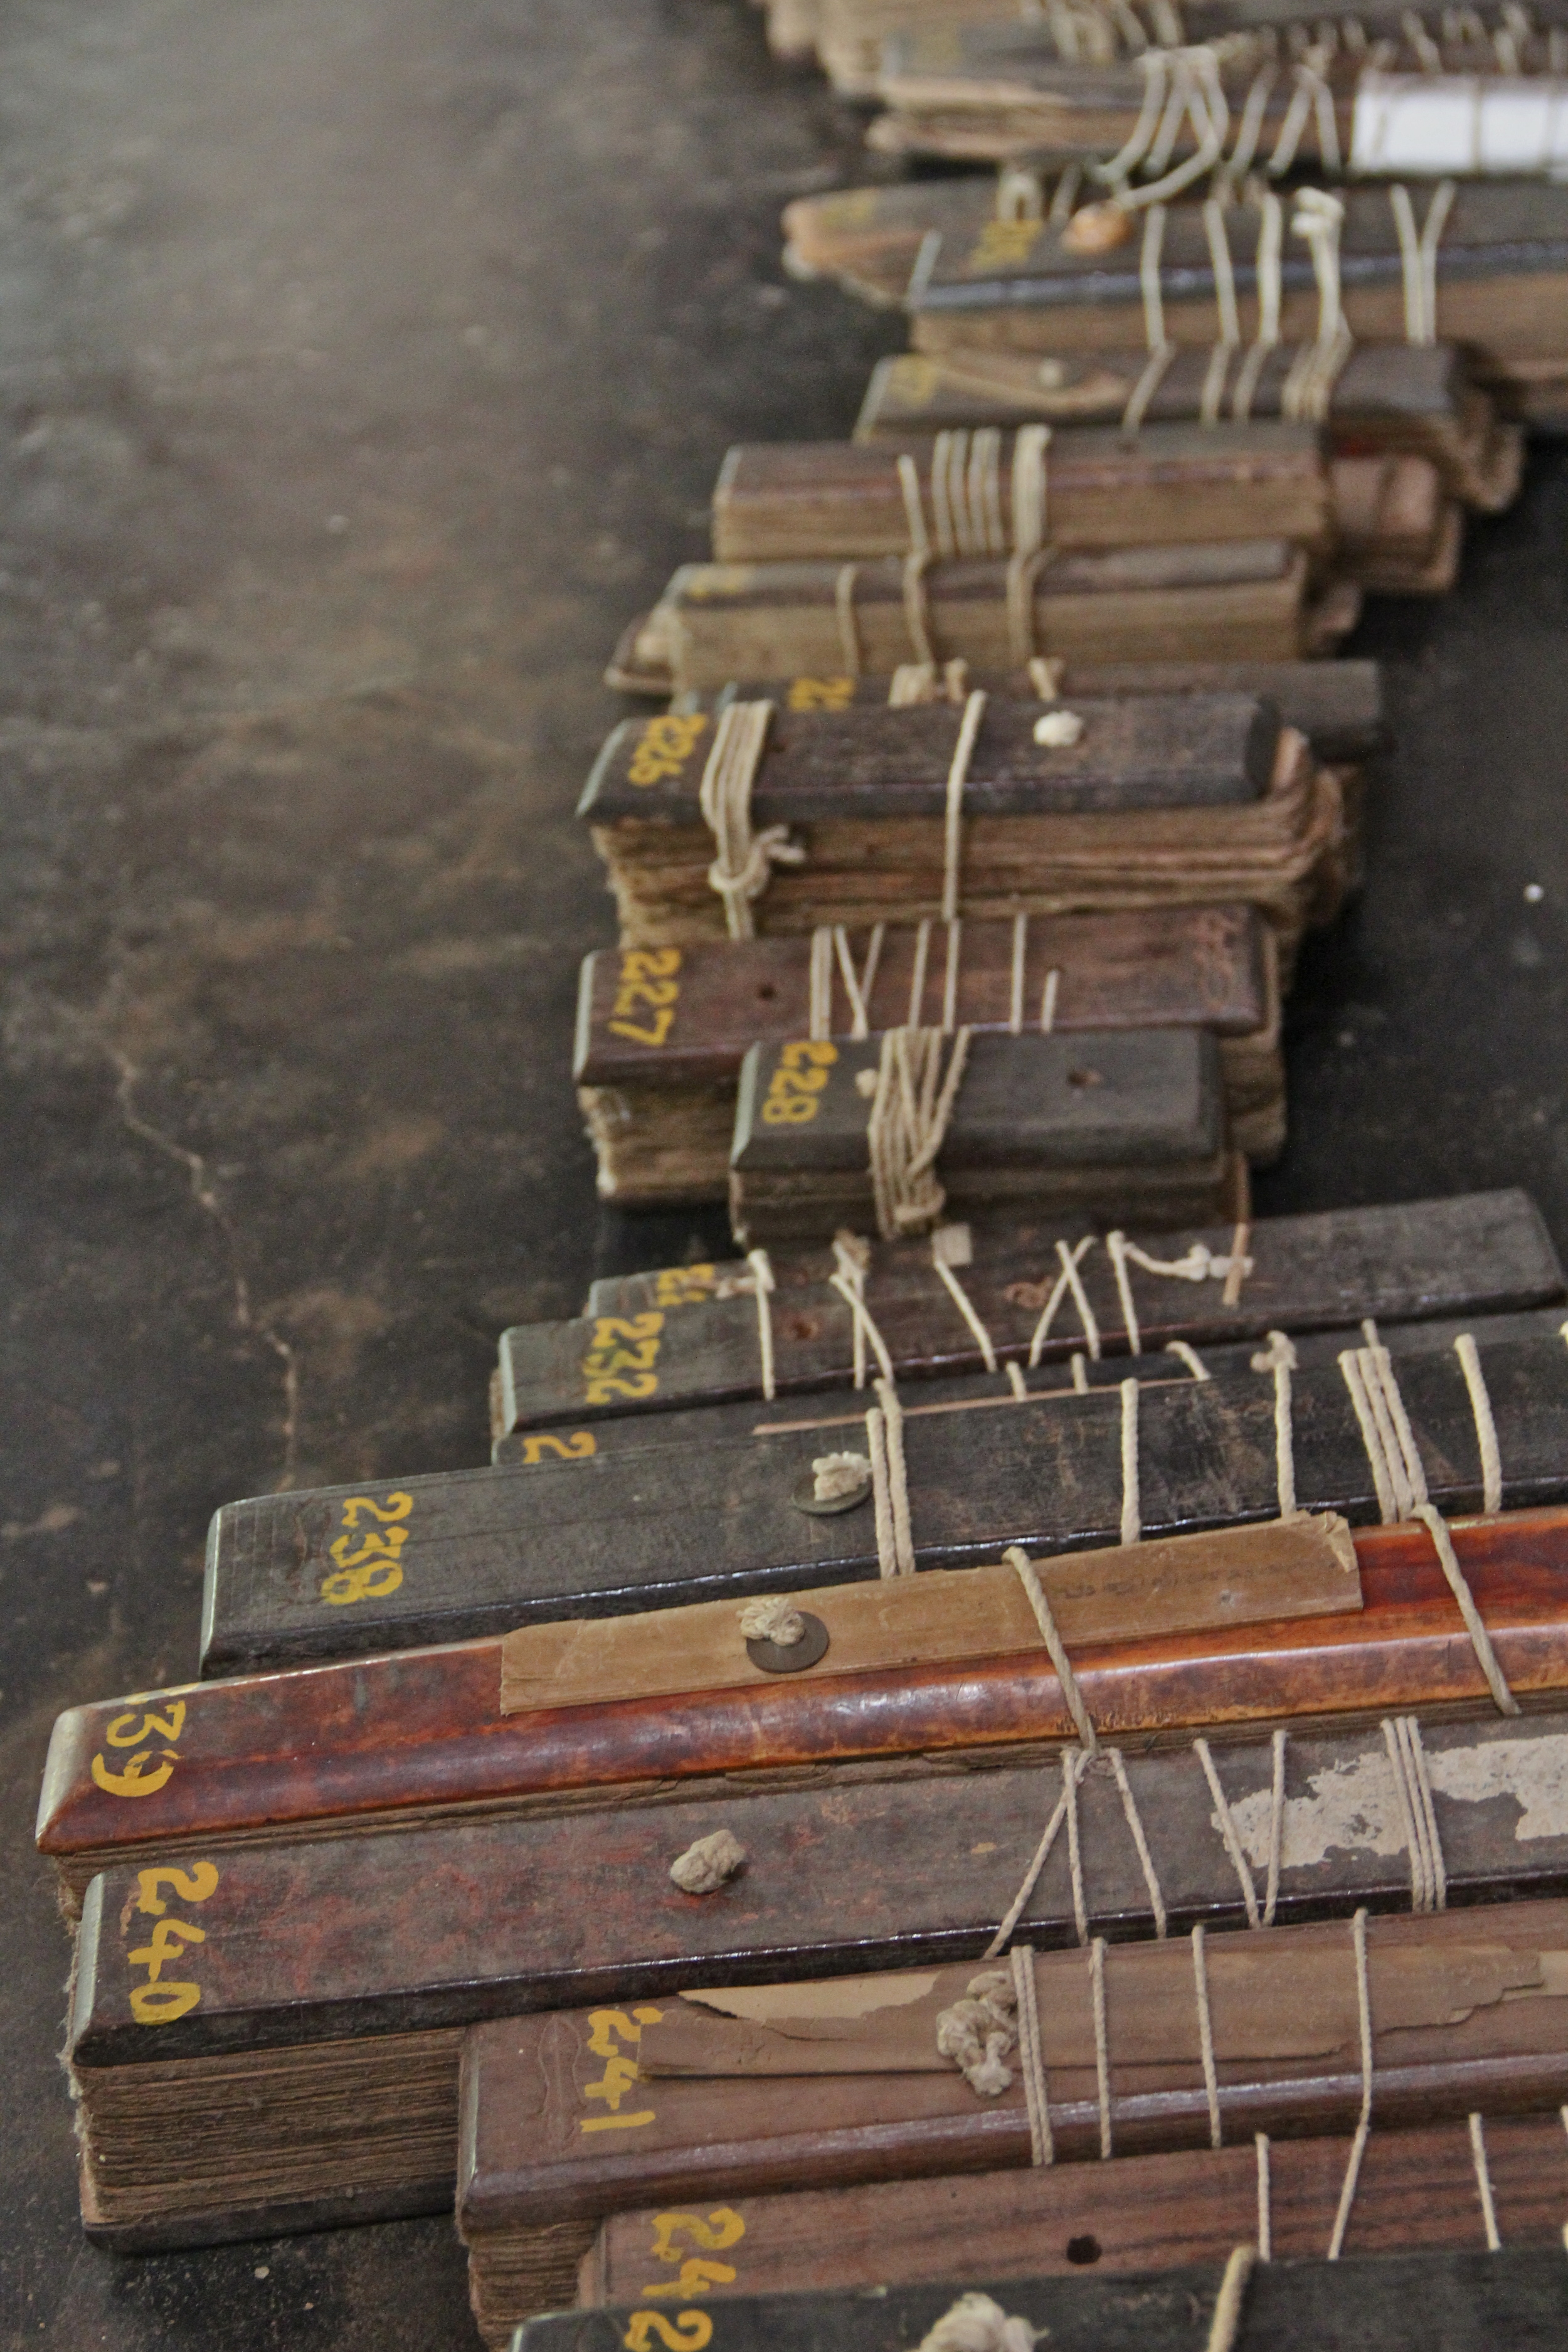 """A small portion of a Kerala manuscript collection: stacks of palm-leaves, incised with text on both sides and stacked like cards, are clamped between wooden covers and tied with string threaded through holes in the middle. Each """"book"""" has been numbered in yellow by modern researchers..."""